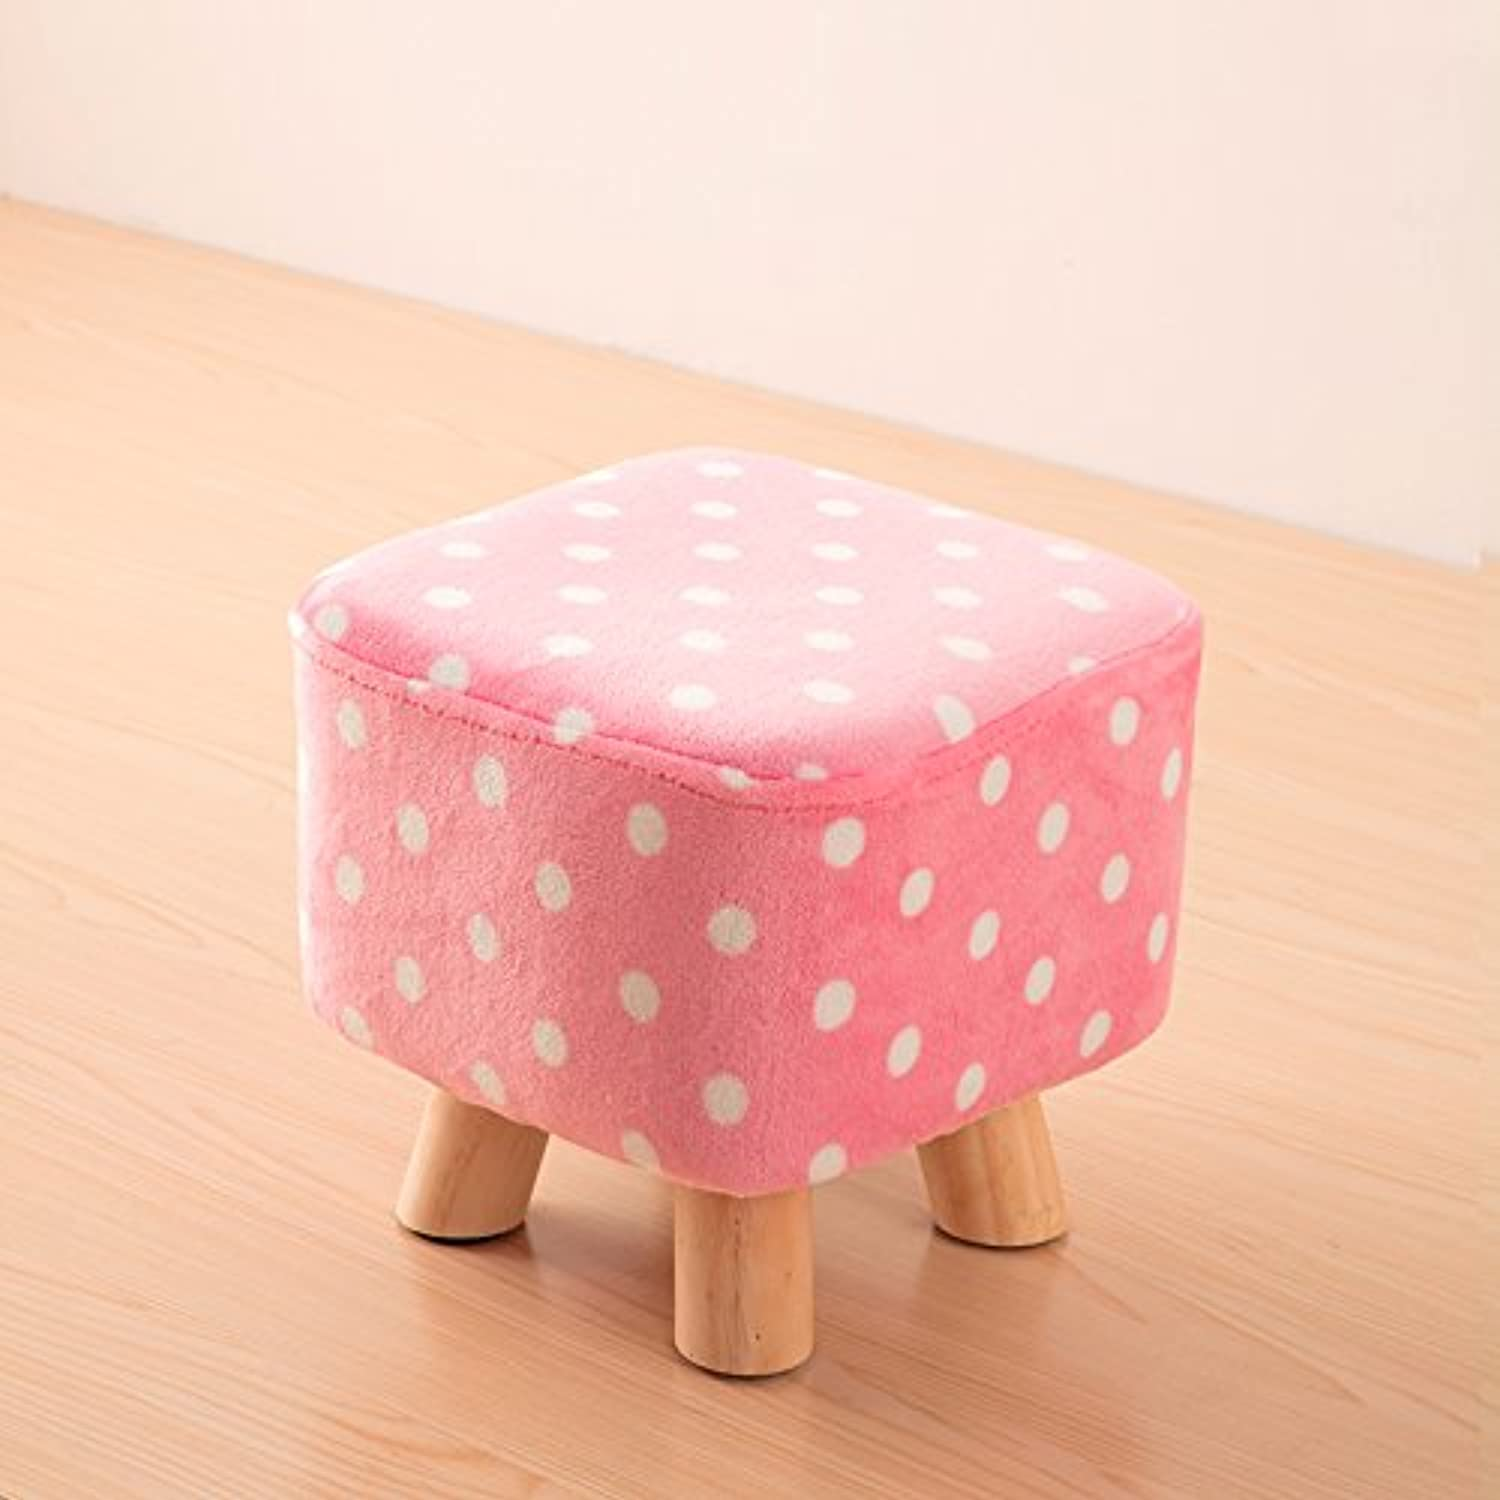 Dana Carrie Solid Wood on a Low stool for shoes is Fashionable to wear shoes That Creative Party Chair Fabrics stool Sofa Chair Coffee Table Bench Home, Pink White Point